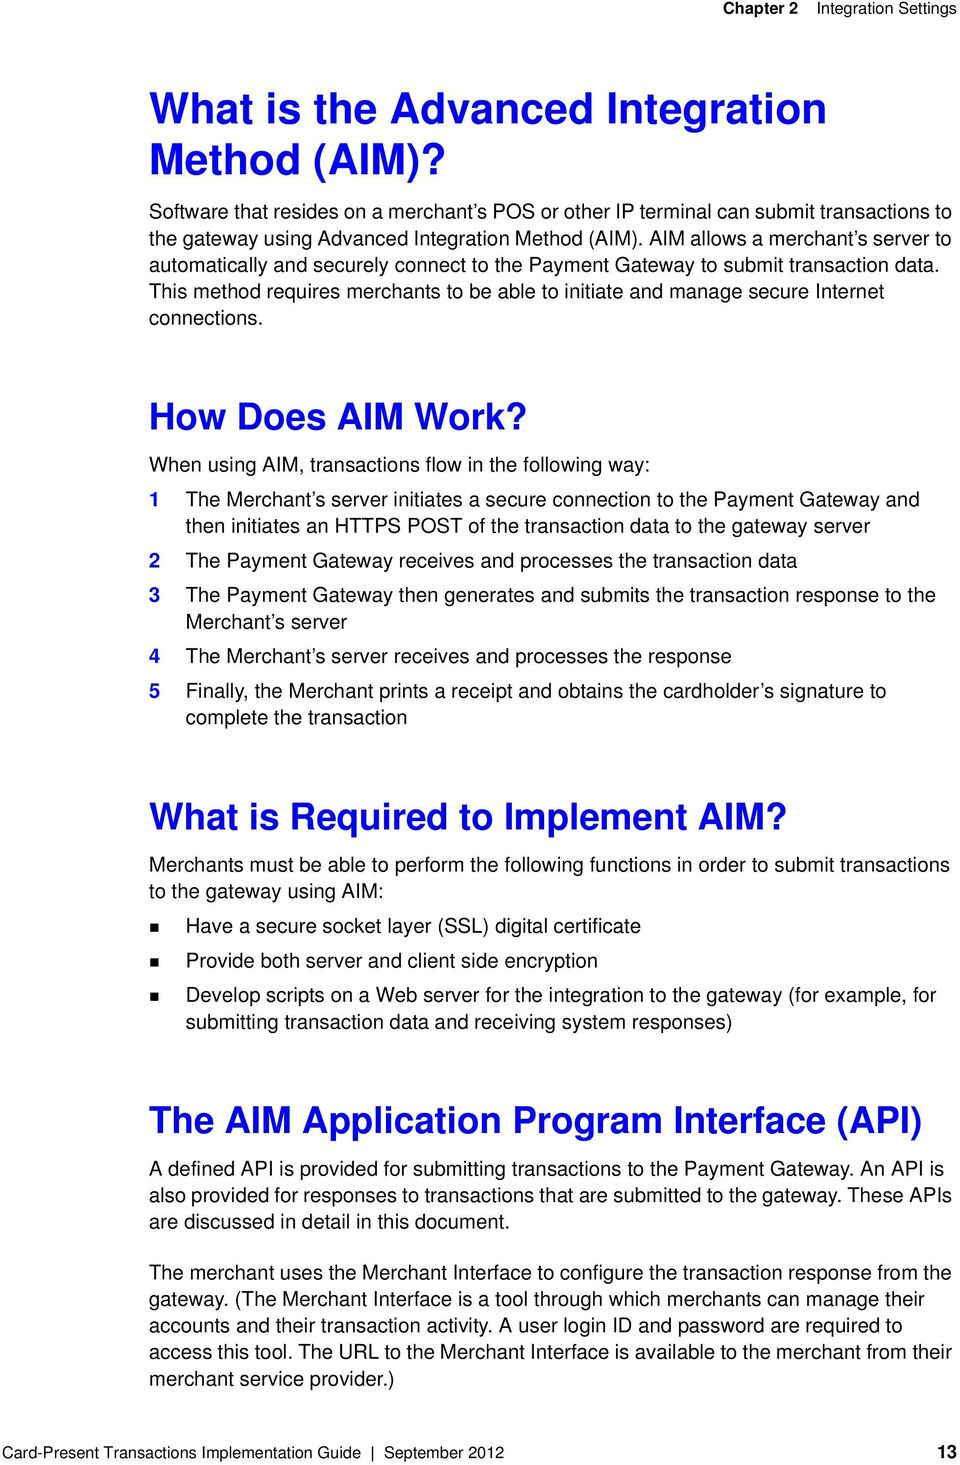 AIM allows a merchant s server to automatically and securely connect to the Payment Gateway to submit transaction data.